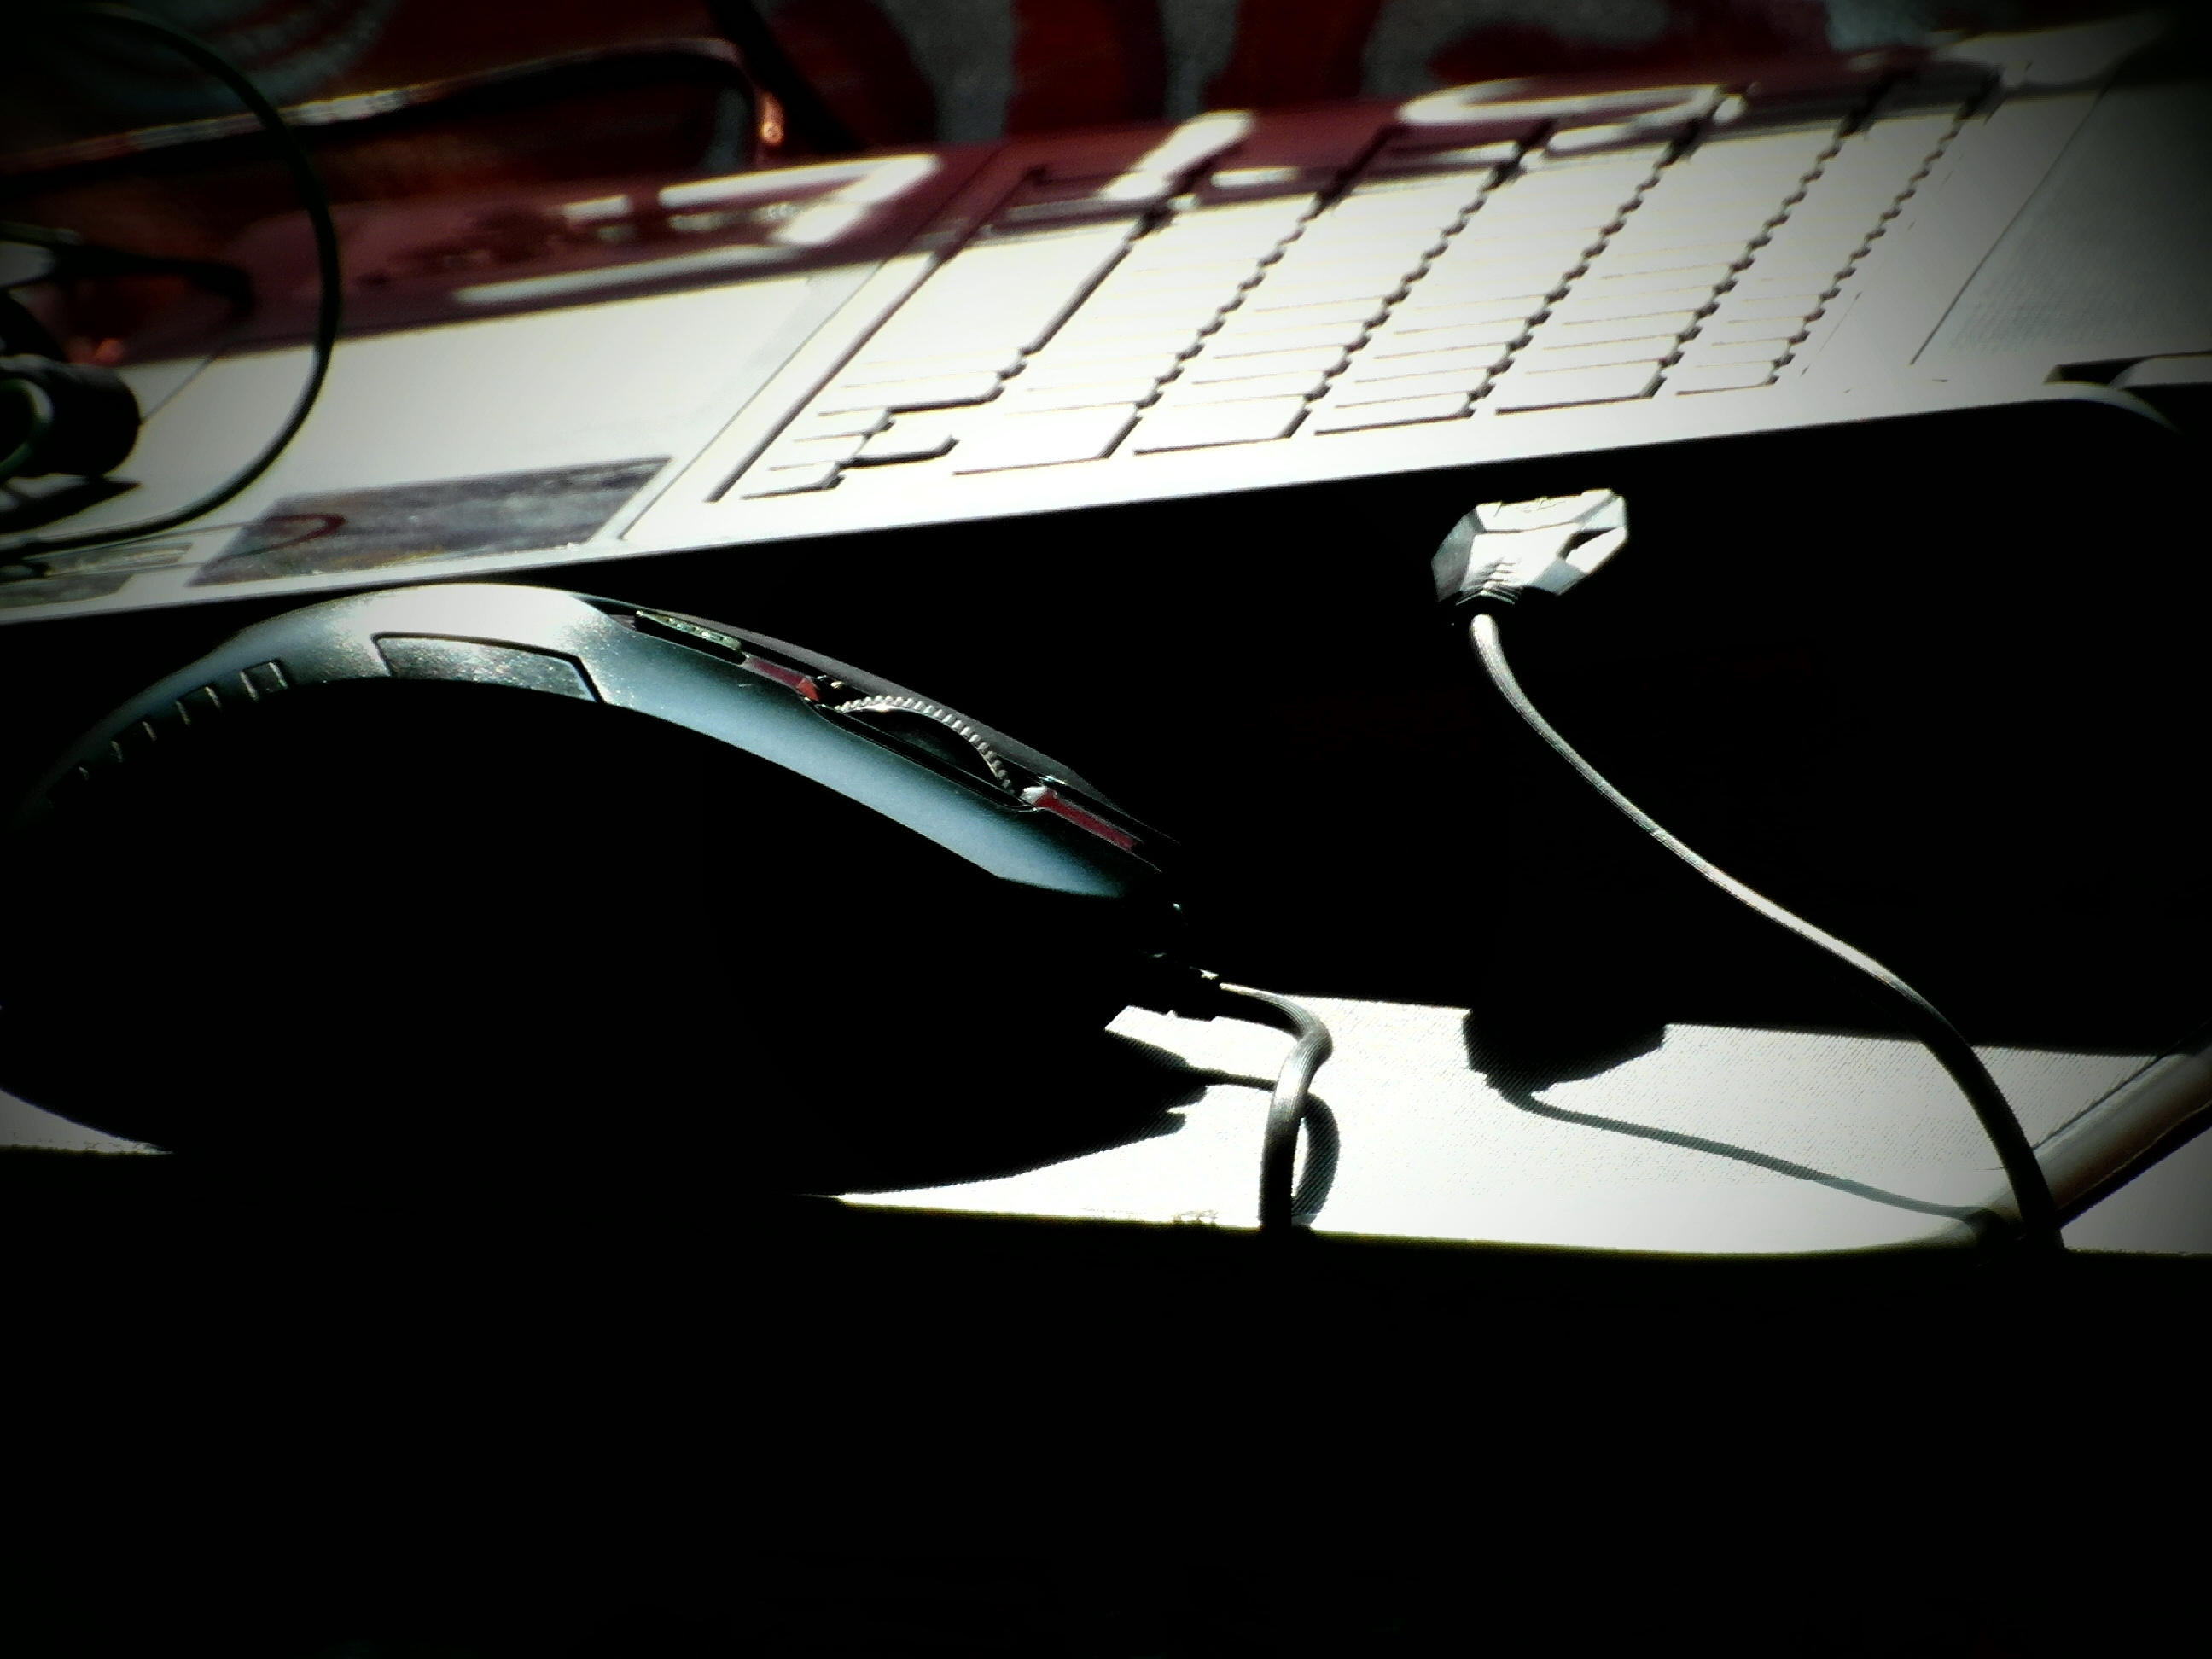 Laptop and mouse in shadows photo